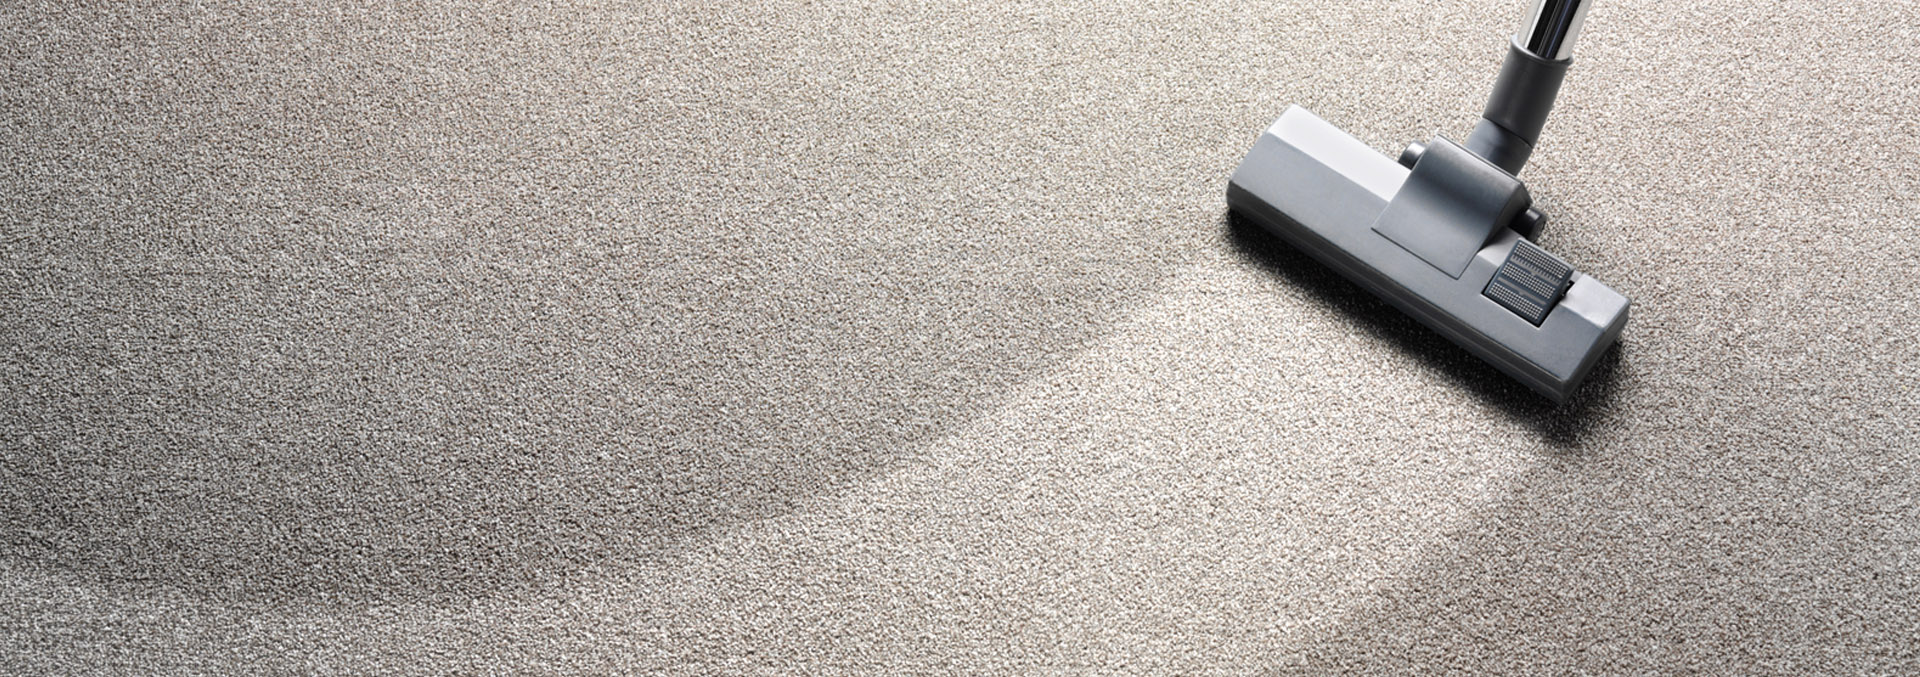 Keeping Carpet Clean Is Affordable now in Adelaide